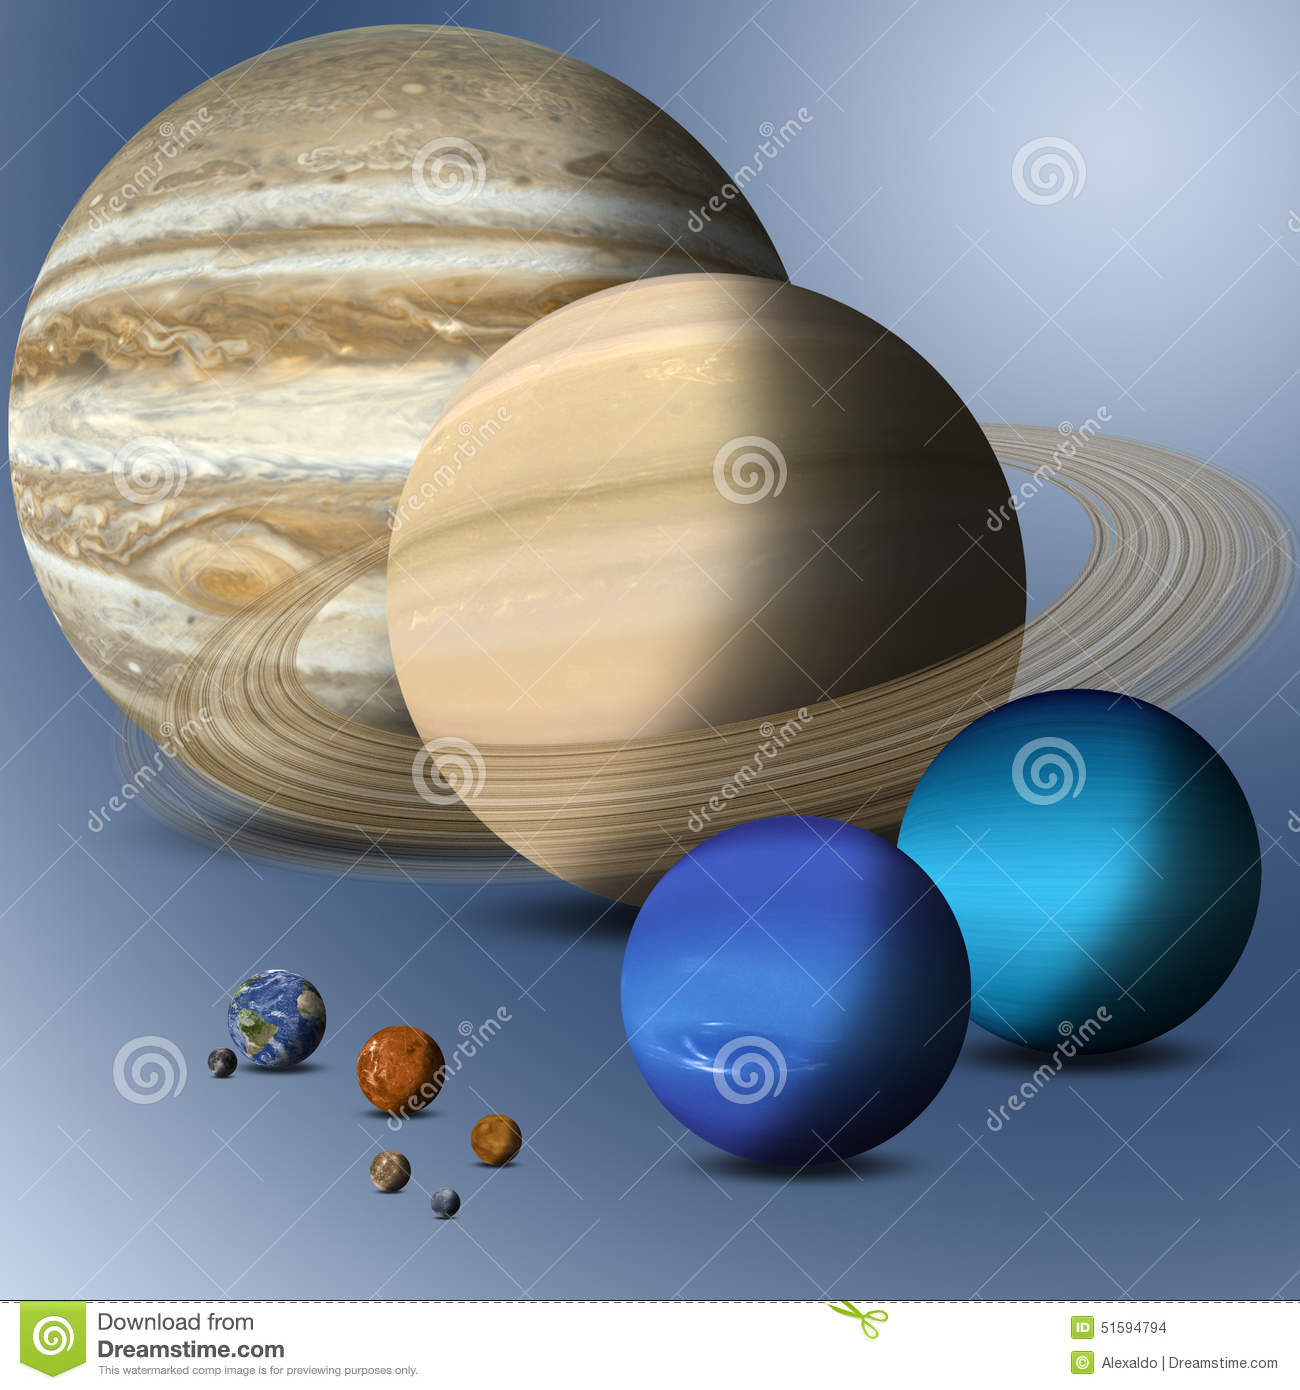 Planets Of Solar System Full Size Comparison Stock